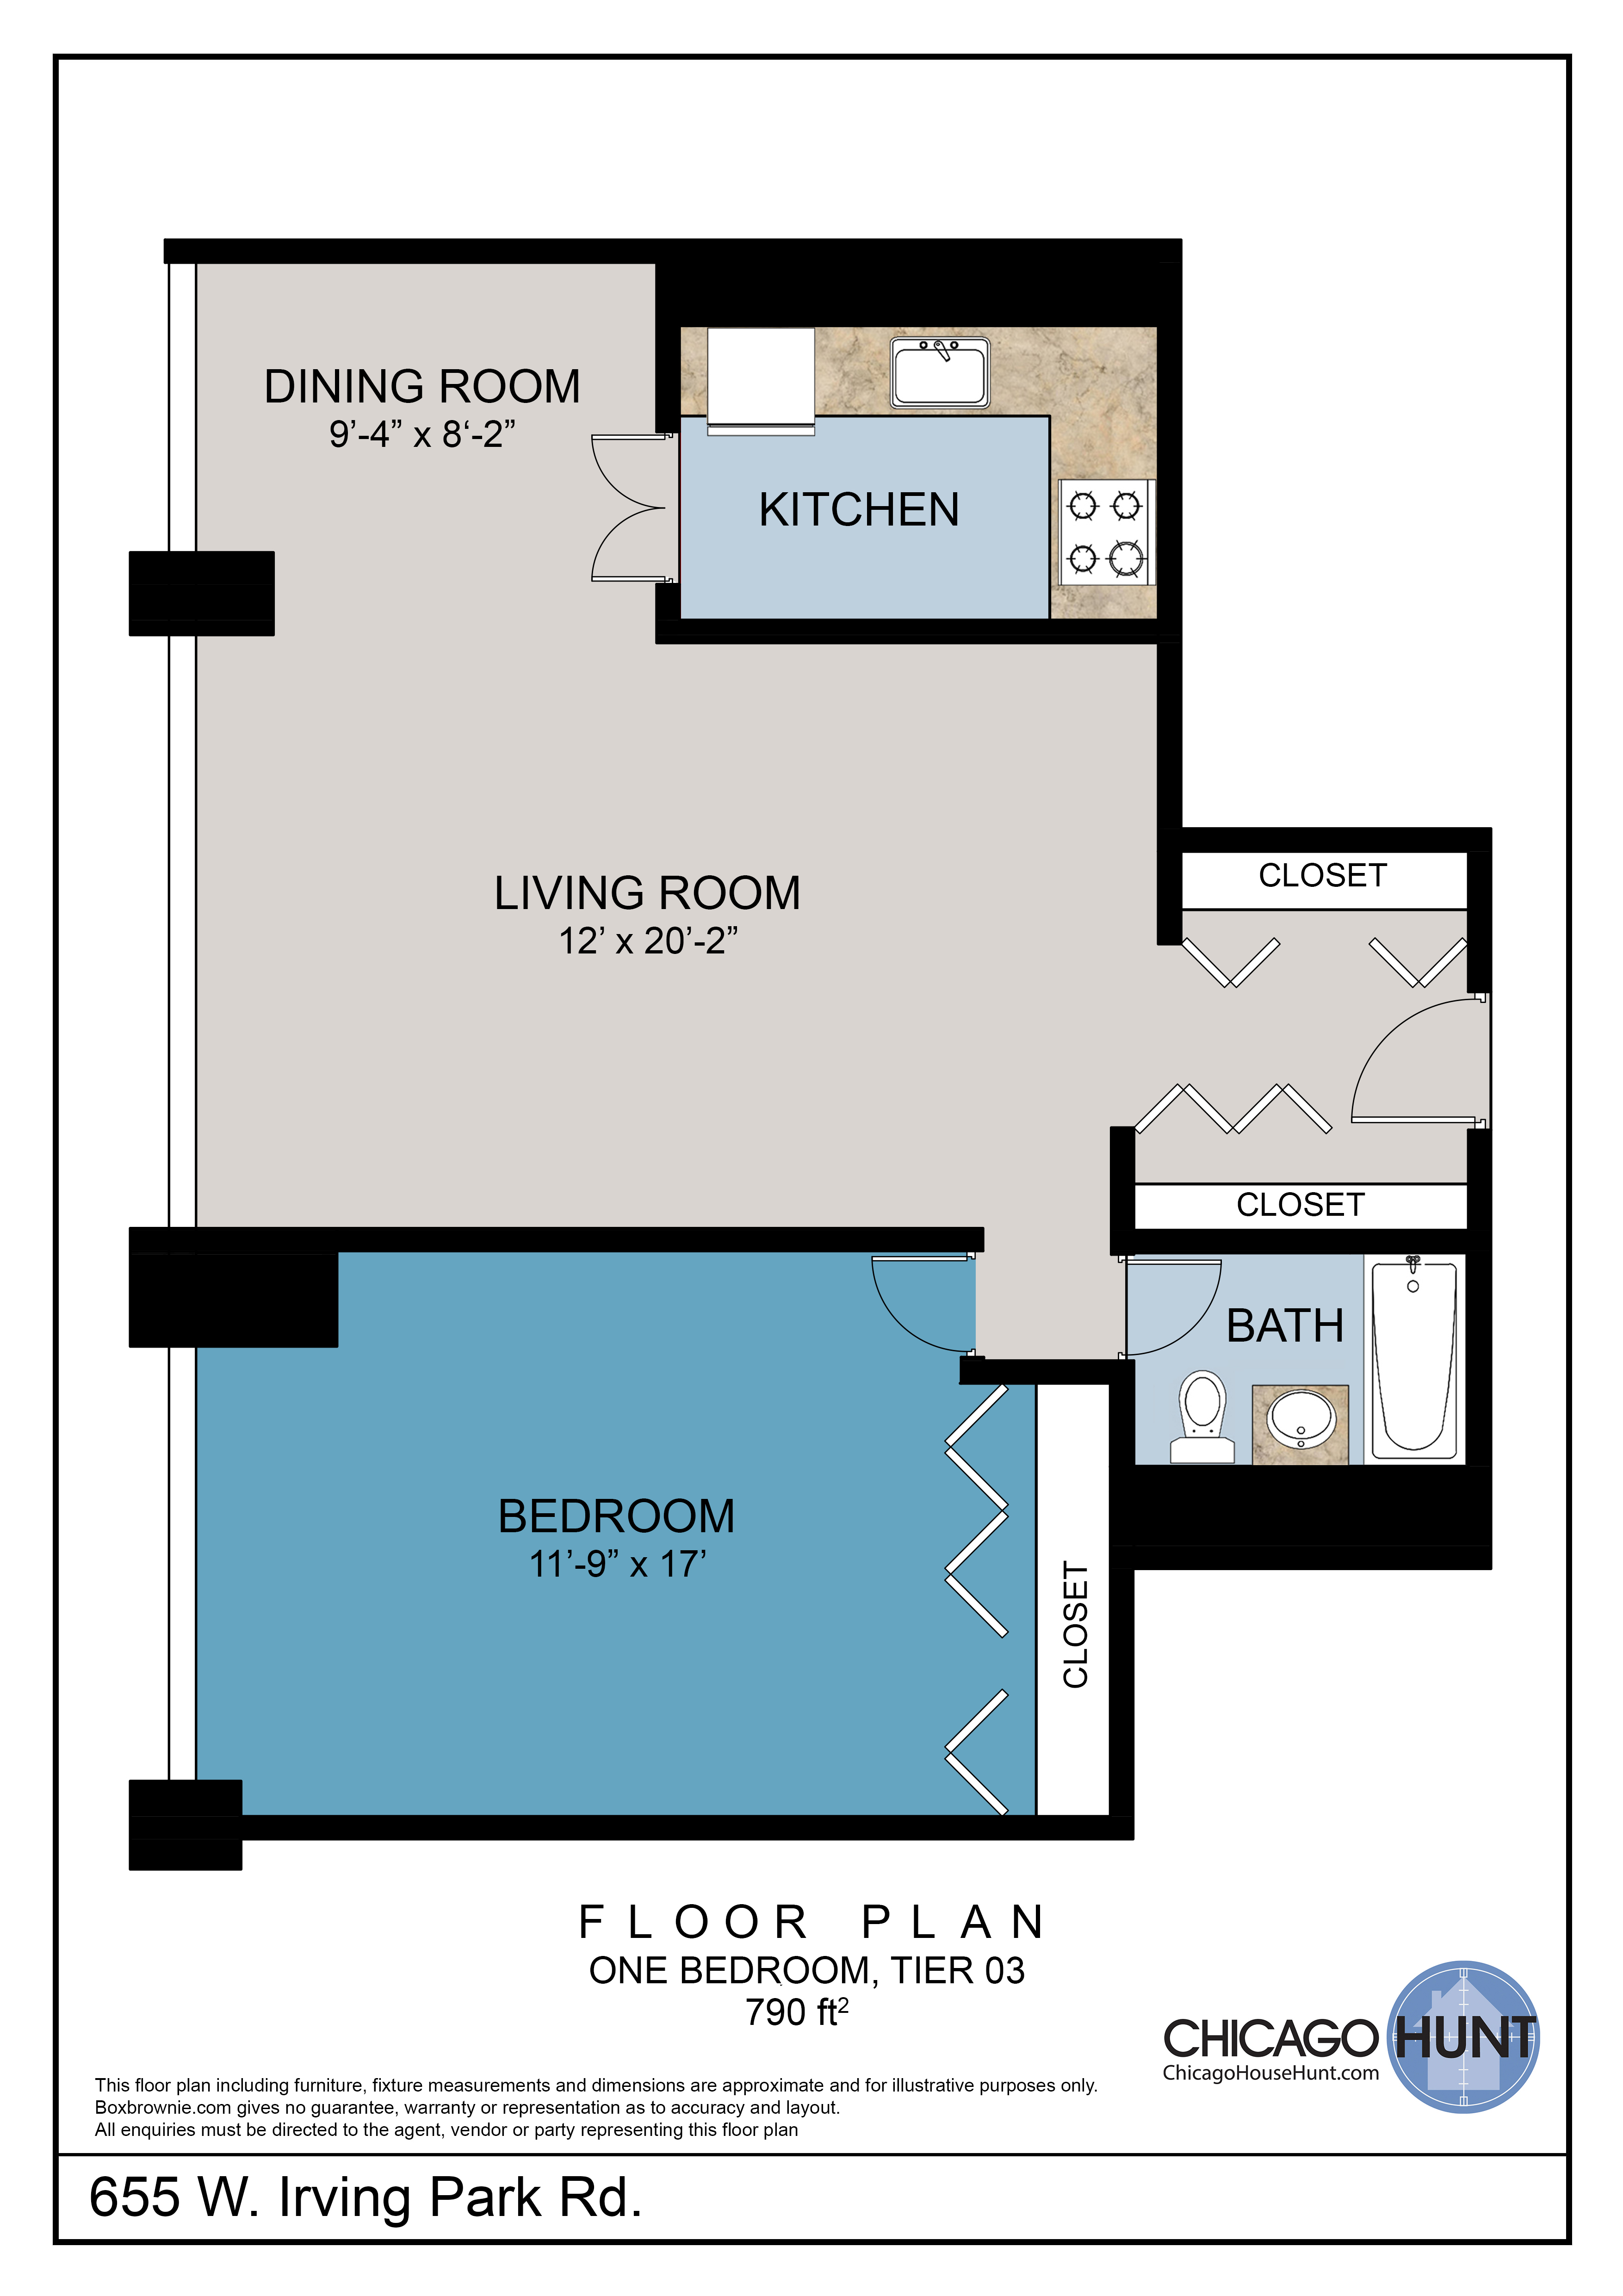 655 Irving Park, Park Place Towere - Floor Plan - Tier 03